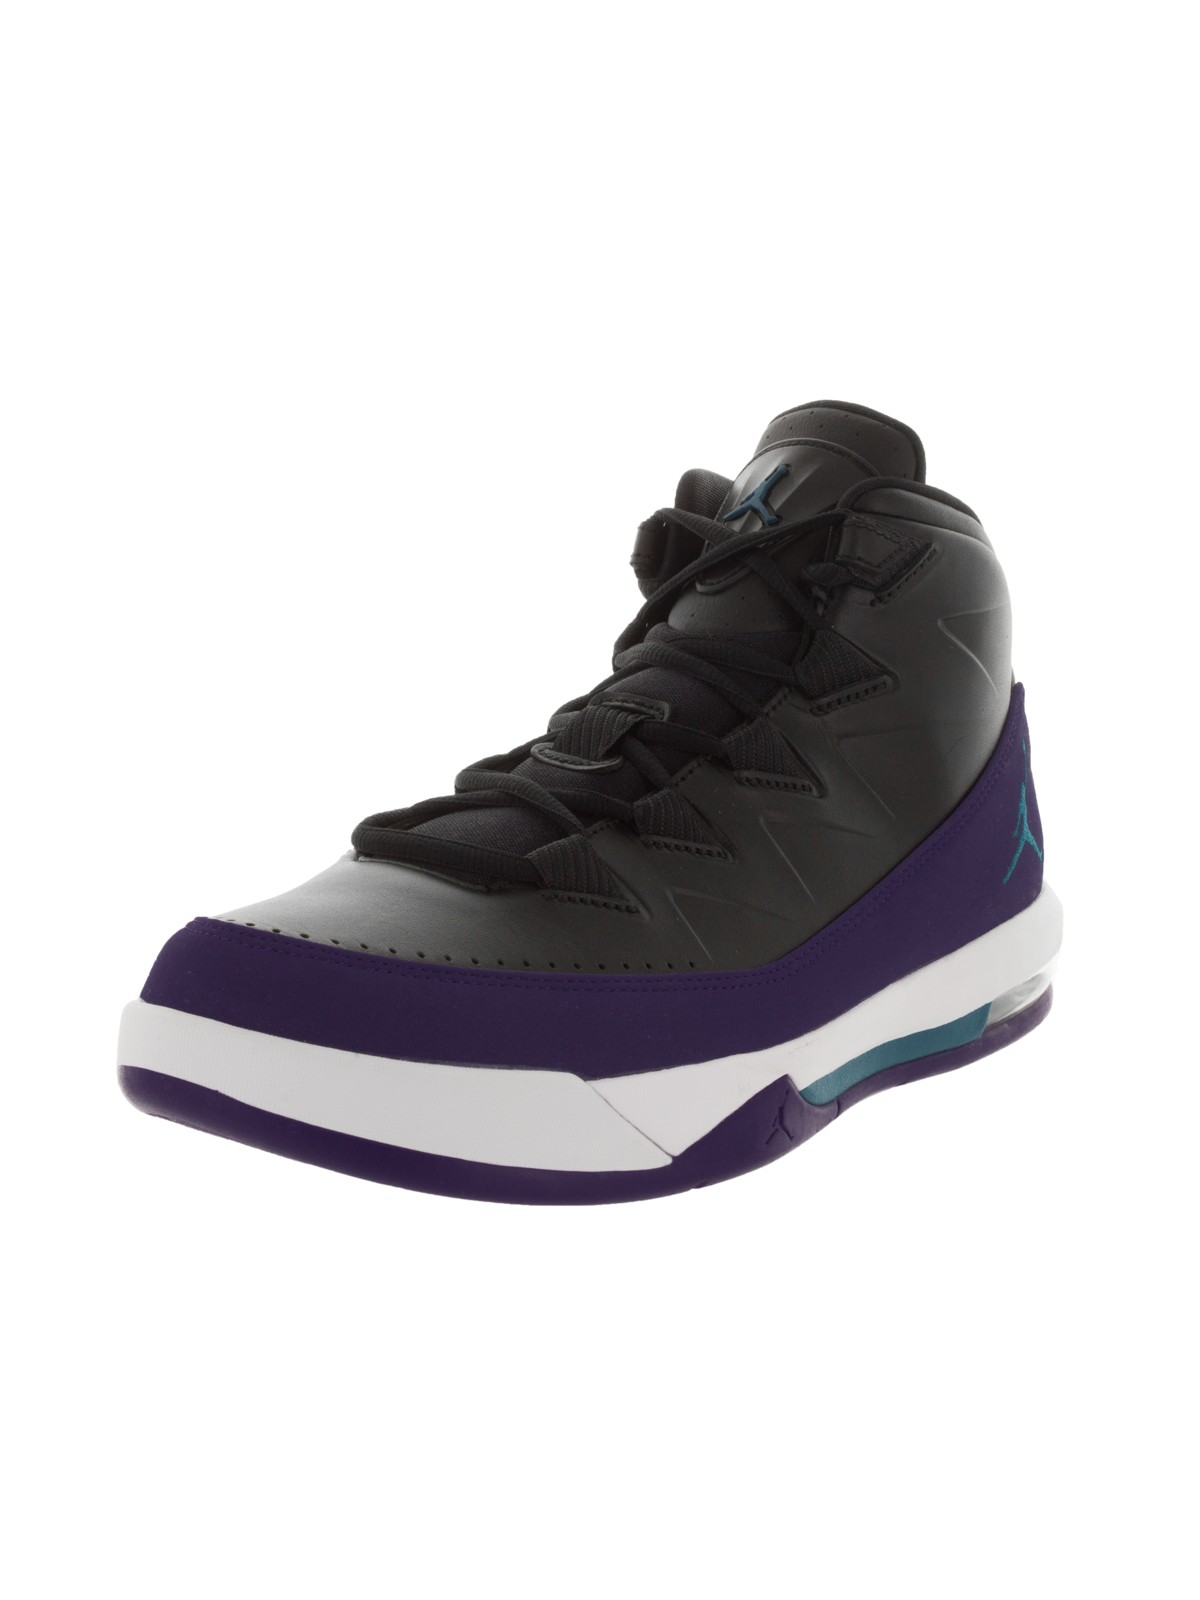 Nike Jordan Men s Jordan Air Deluxe Basketball Shoe e194cc207